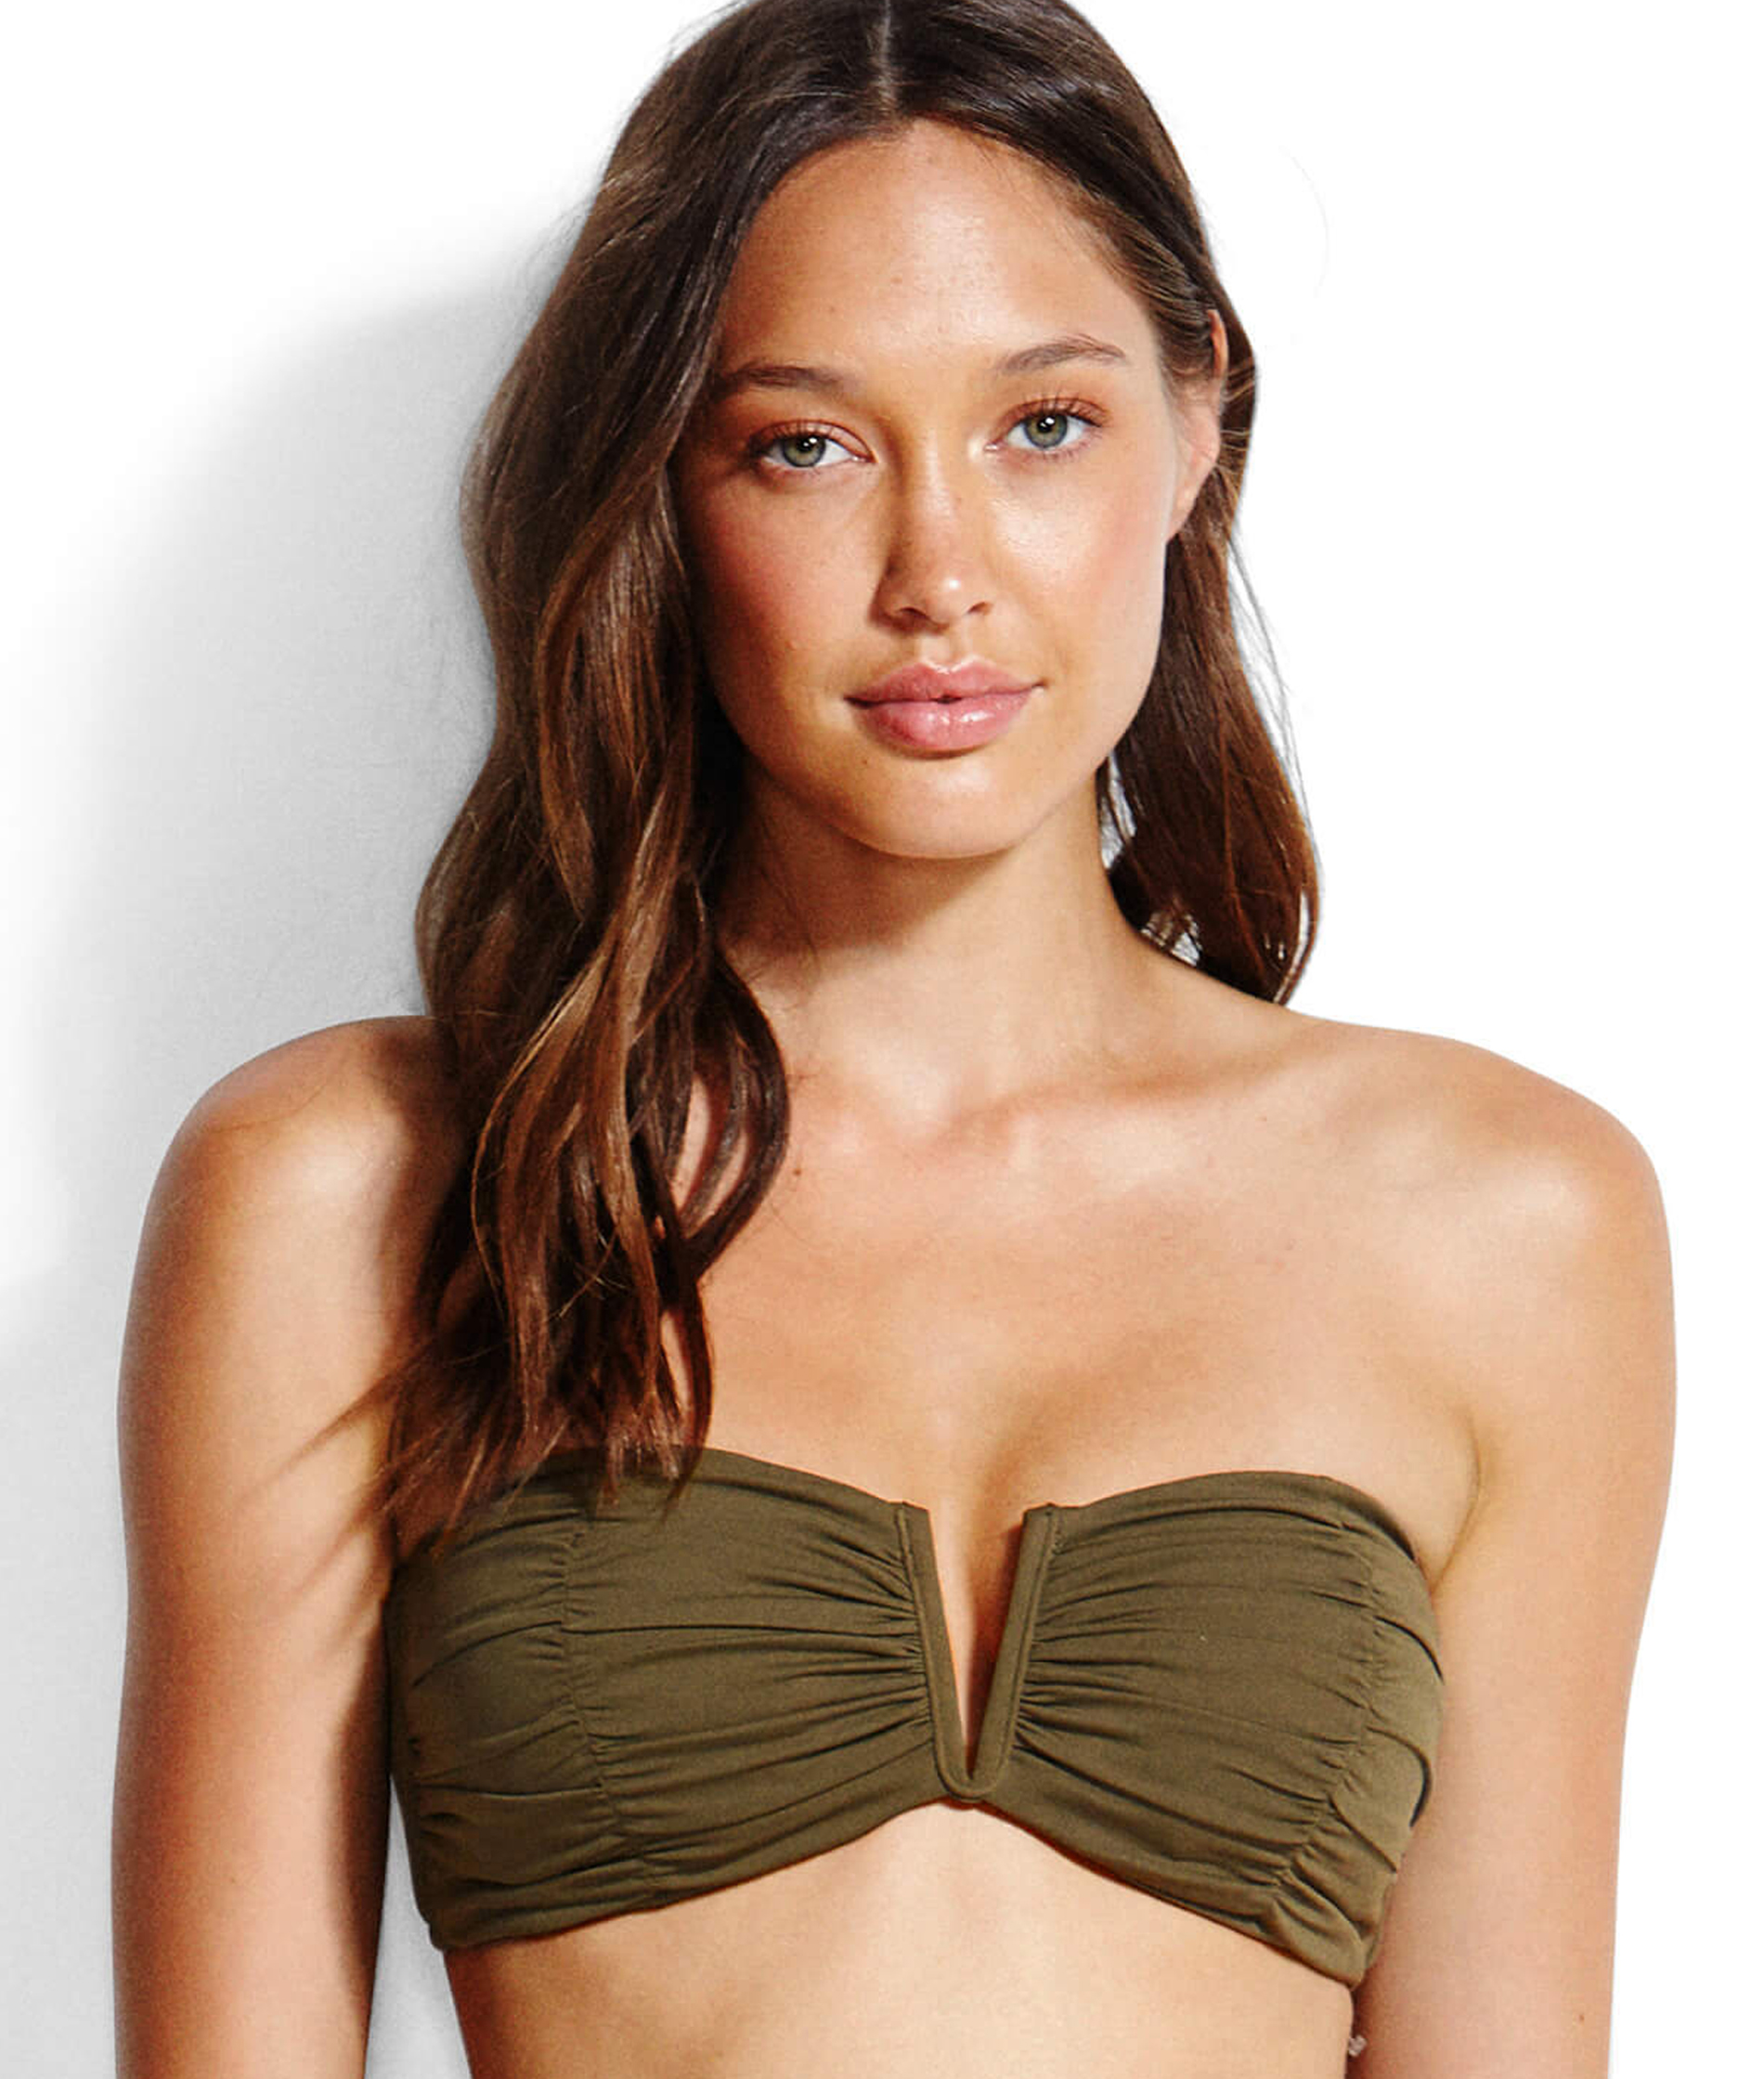 Seafolly Ruched Bandeau Bikini Top - Dark Olive and Espresso